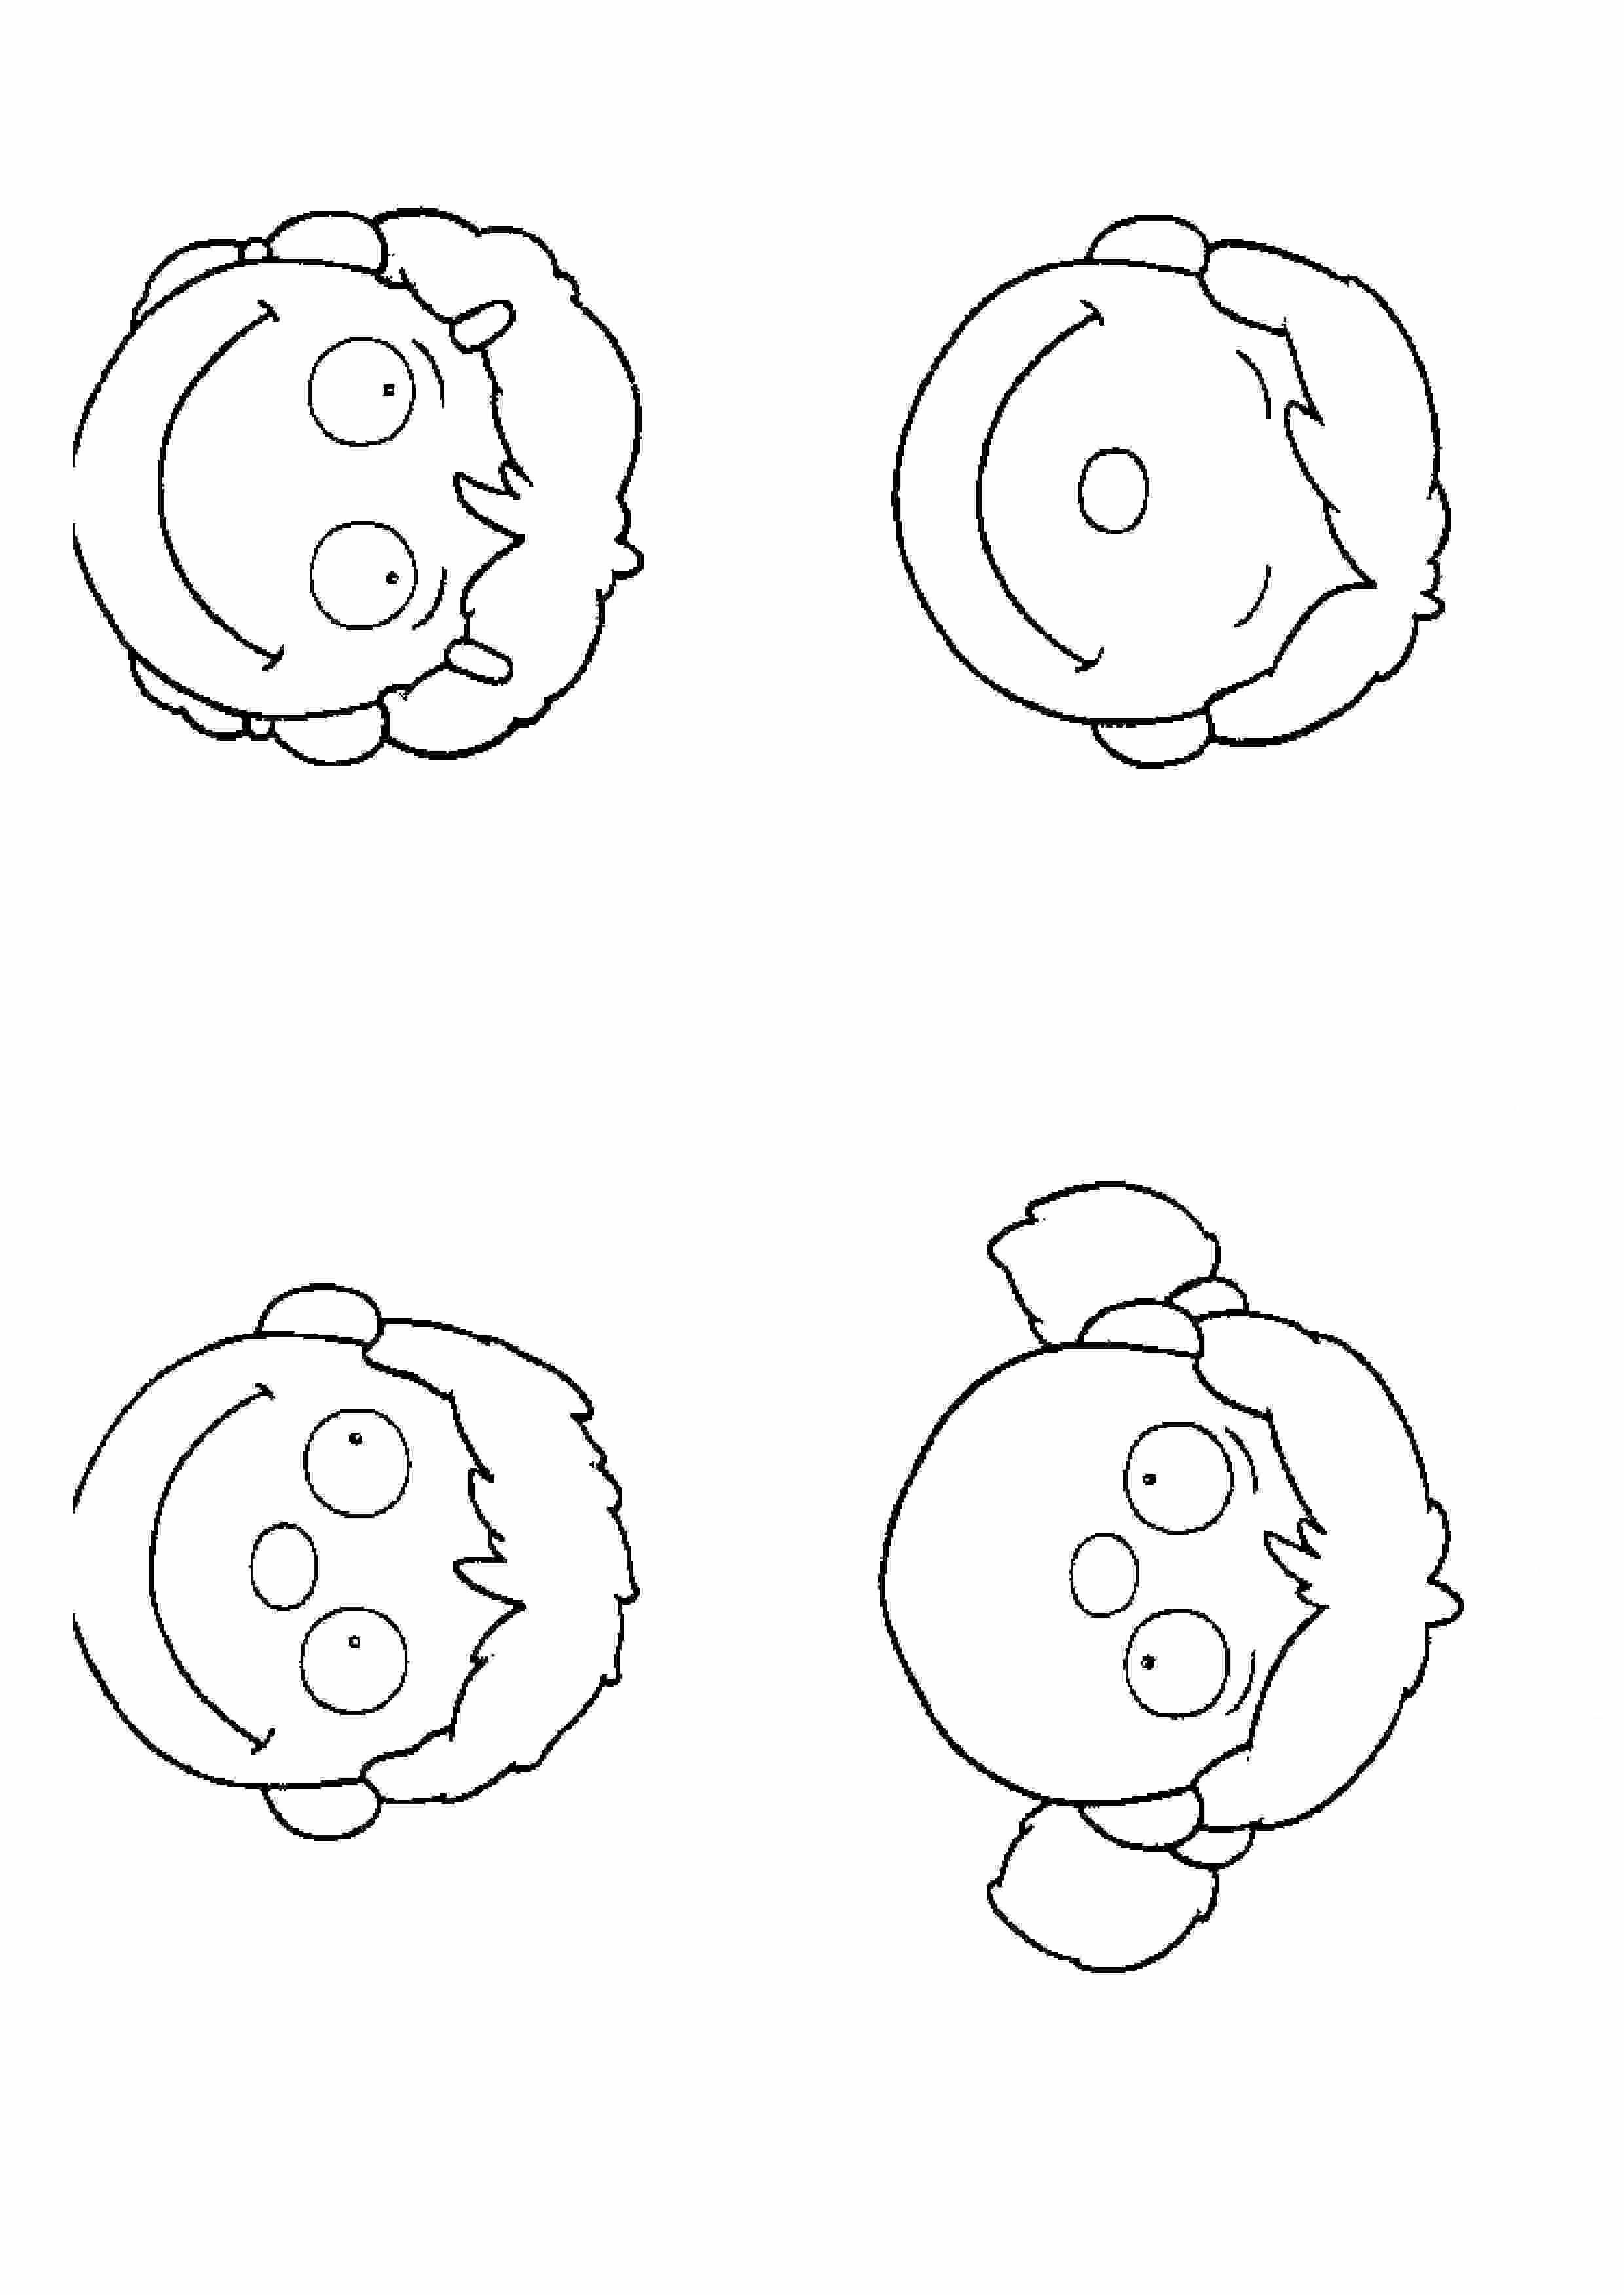 Elementary school worksheets complete and coloring 2 activities elementary school worksheets complete and coloring 2 robcynllc Image collections